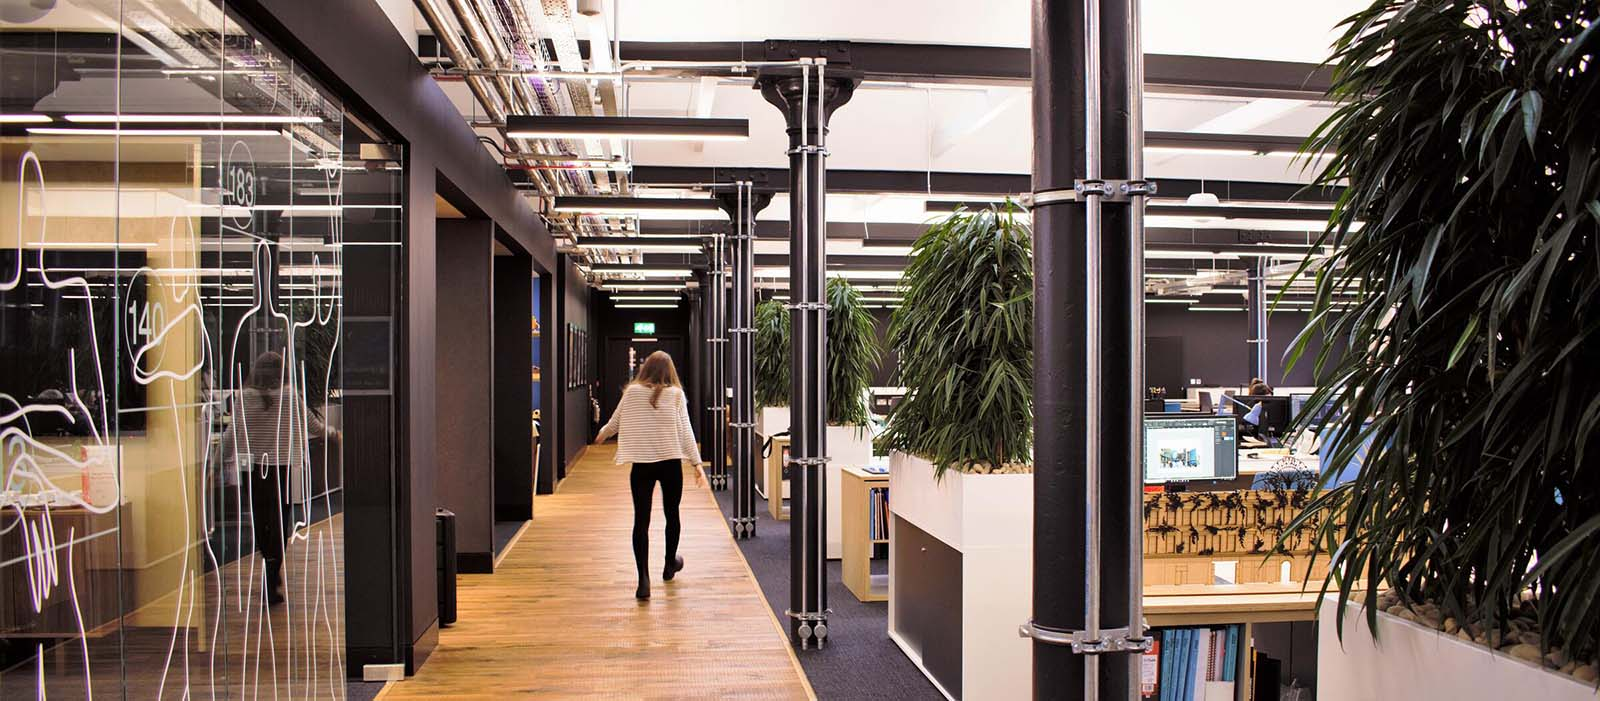 360 Architecture office with tall modern plants in cabinet top planters creating a separate walkway for staff